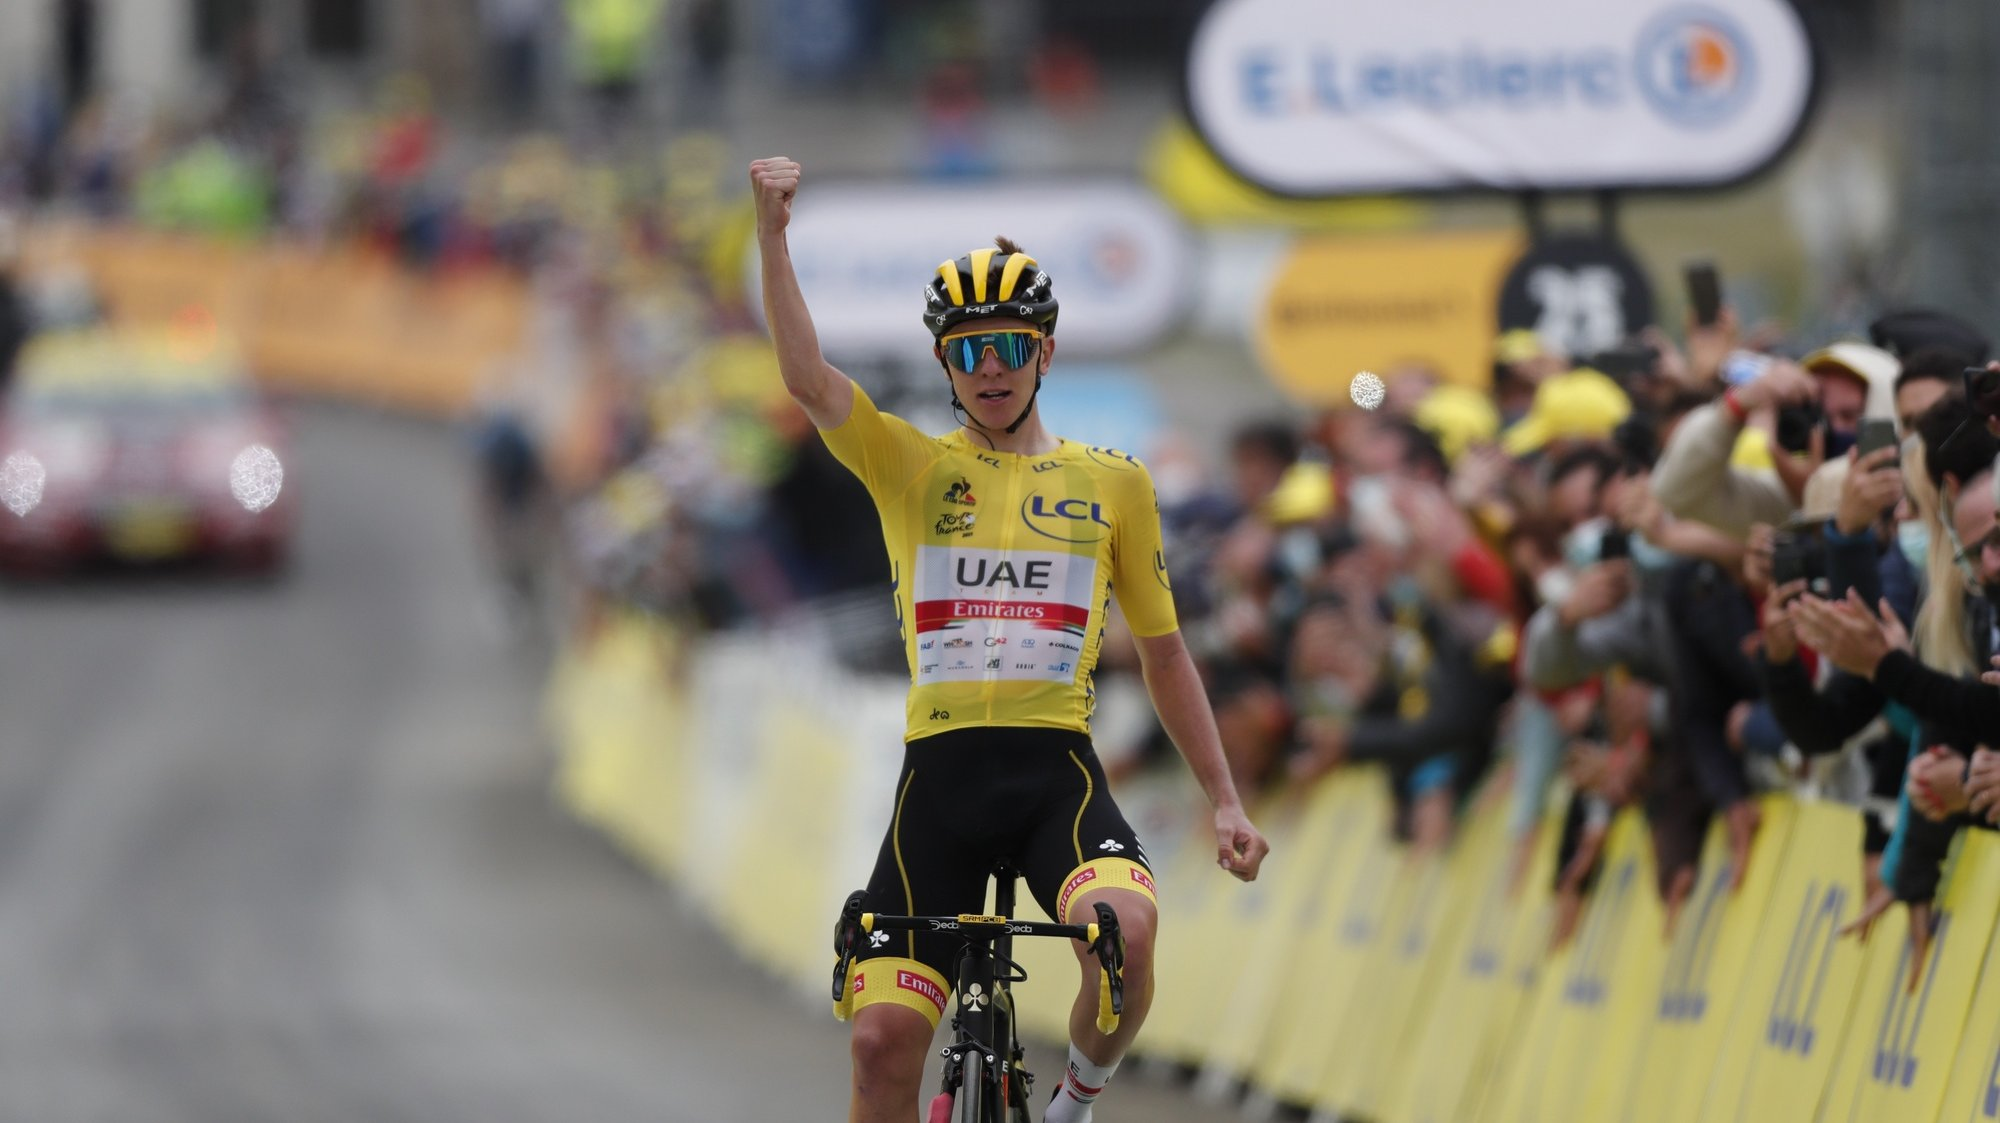 epa09346611 Yellow Jersey Slovenian rider Tadej Pogacar of the UAE-Team Emirates wins the 18th stage of the Tour de France 2021 over 129.7 km from Pau to Luz Ardiden, France, 15 July 2021.  EPA/GUILLAUME HORCAJUELO